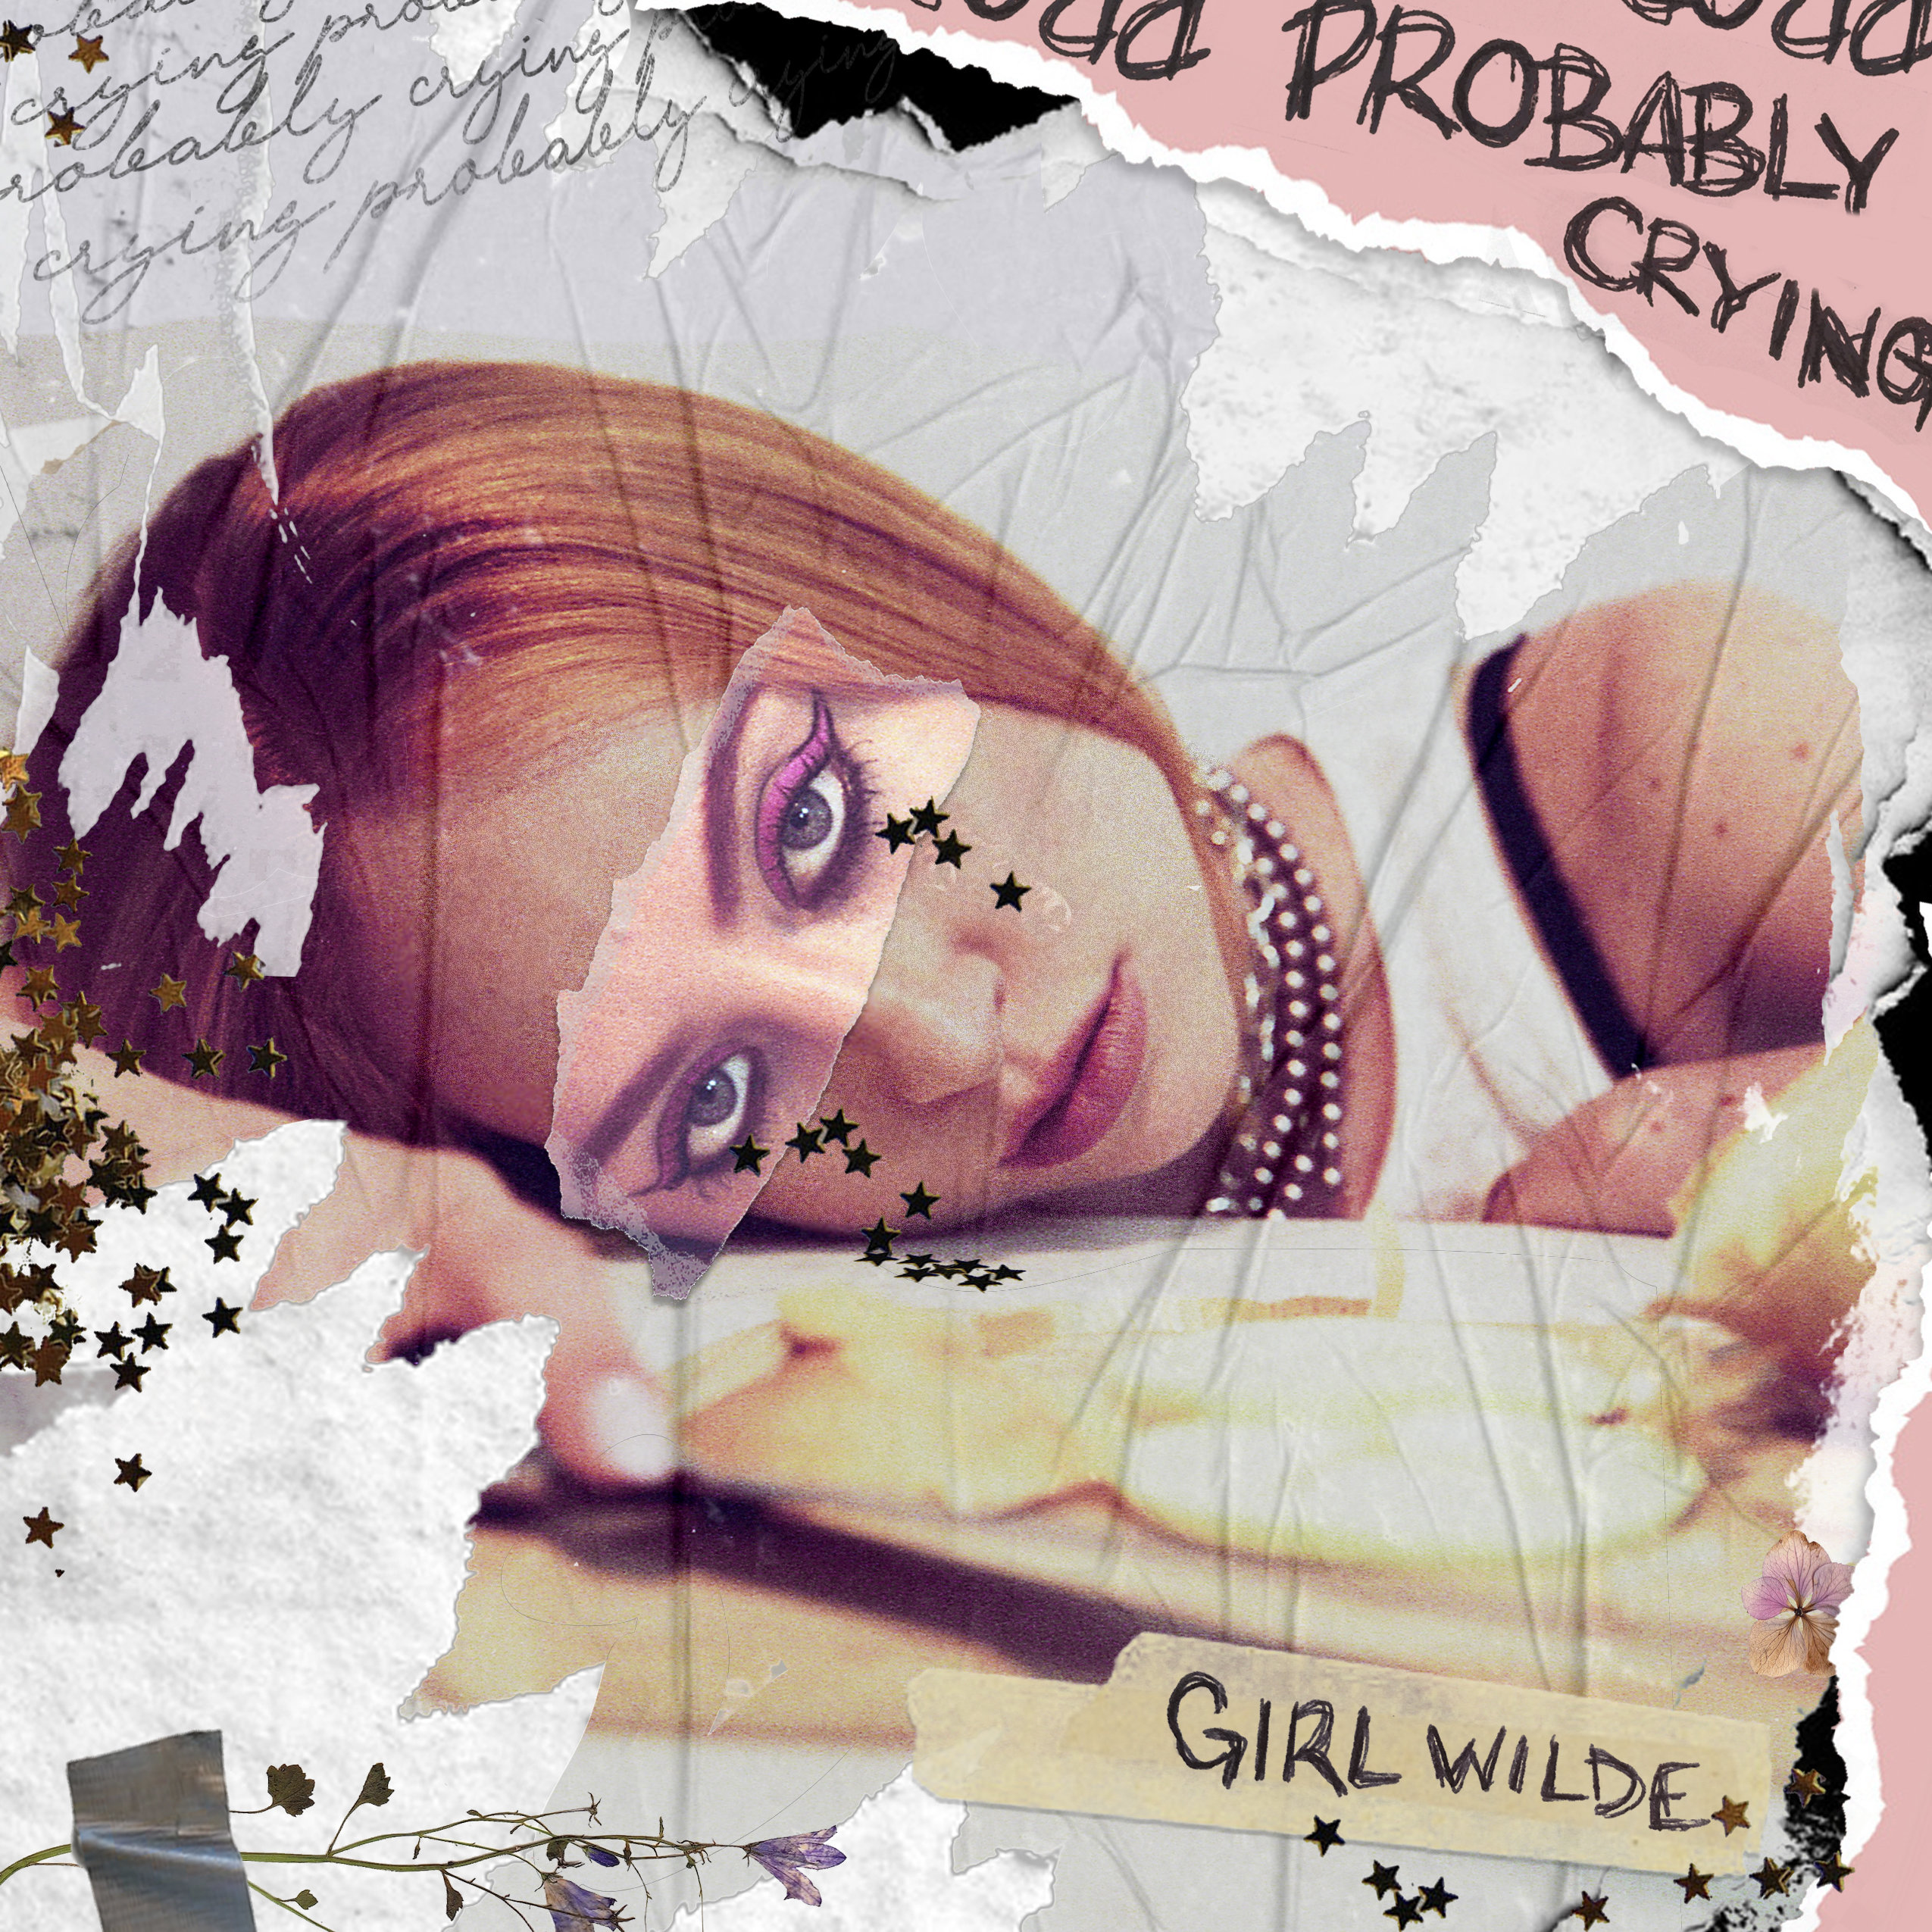 """GIRL WILDE // """"PROBABLY CRYING"""" – SINGLE REVIEW"""